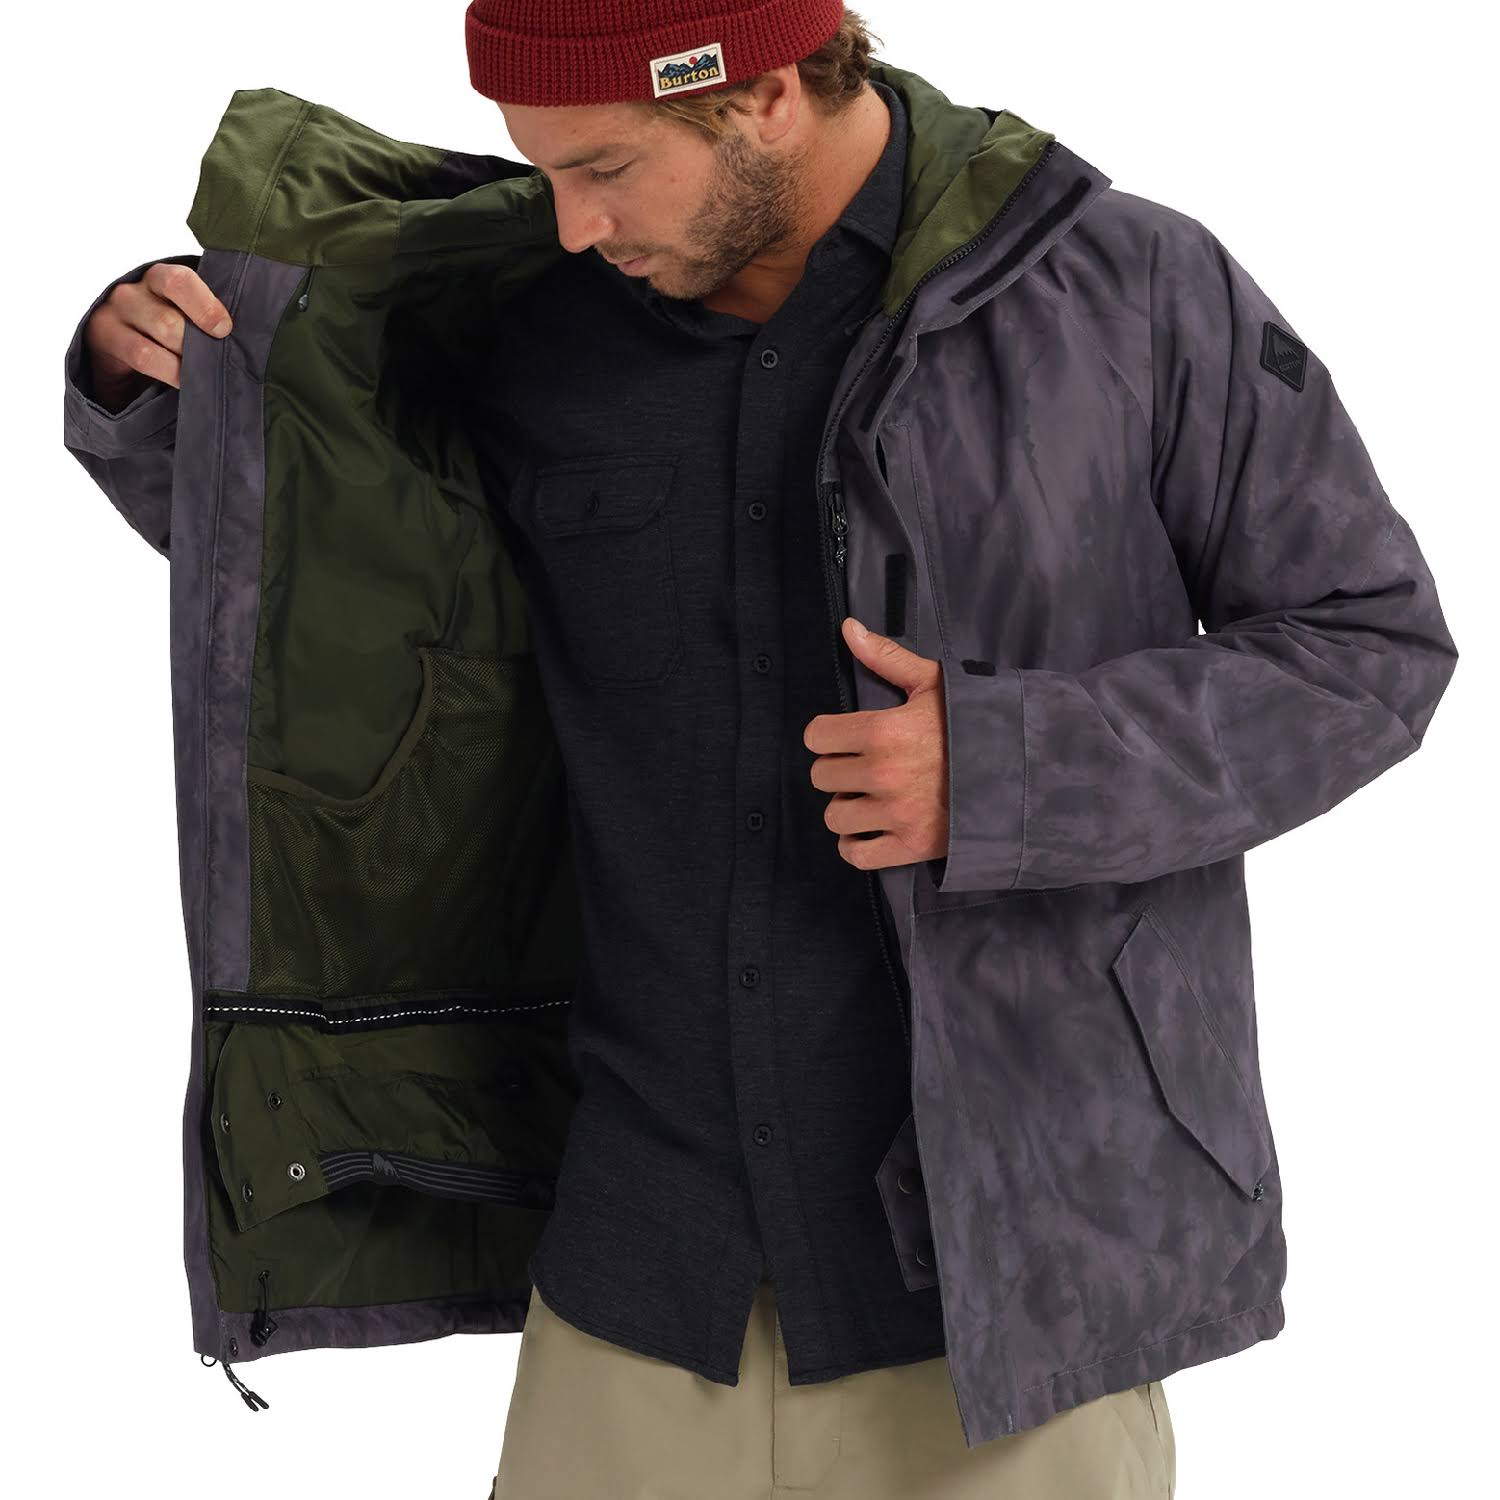 Cloud tex Shadows Medium Für Gore Burton Herren Radialjacke 507Yn7q